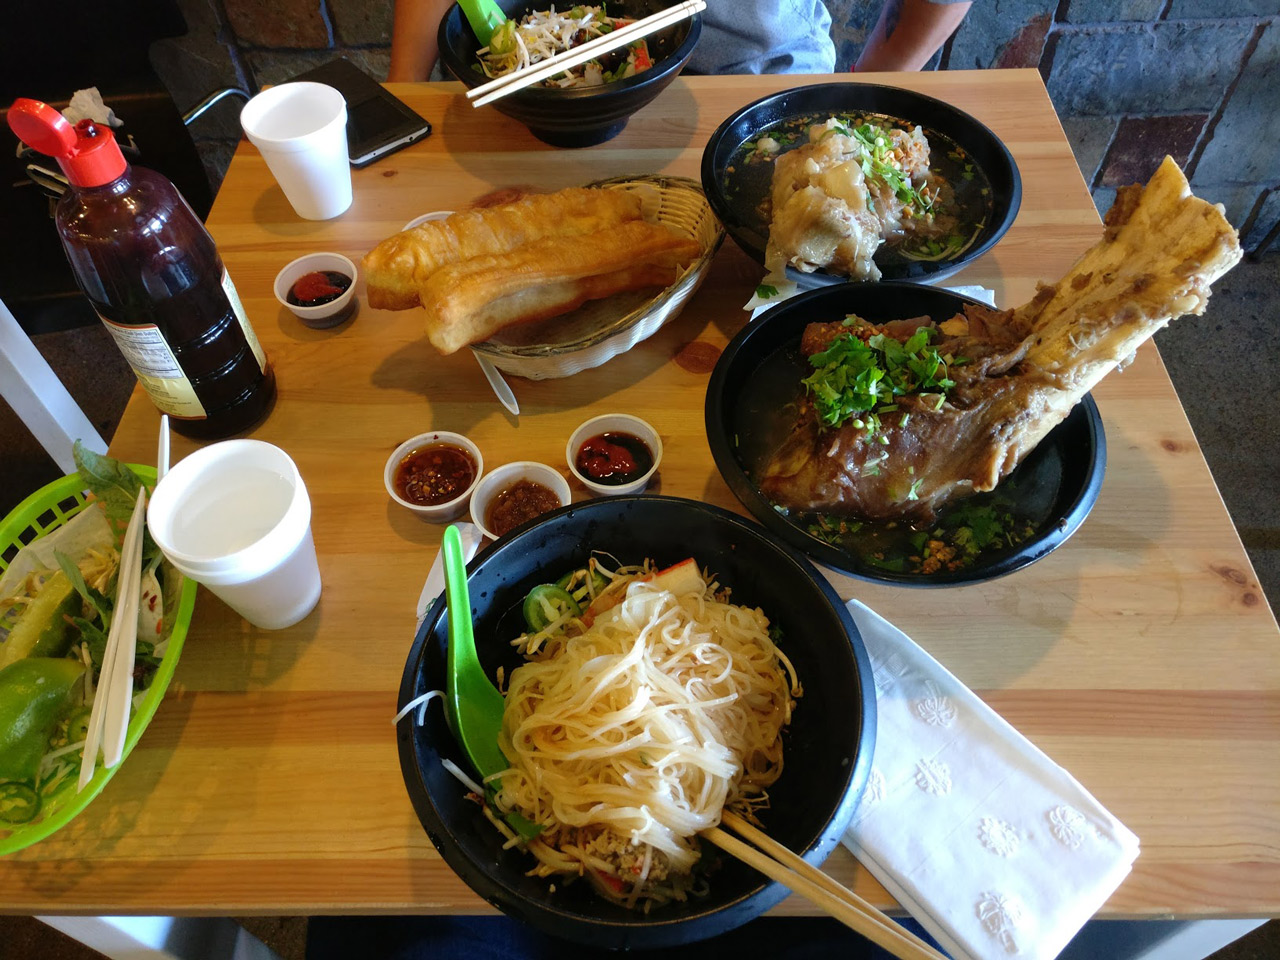 Got to Los Angeles and my friend took me to eat the massive Phnom Penh noodle. Look at the bone!